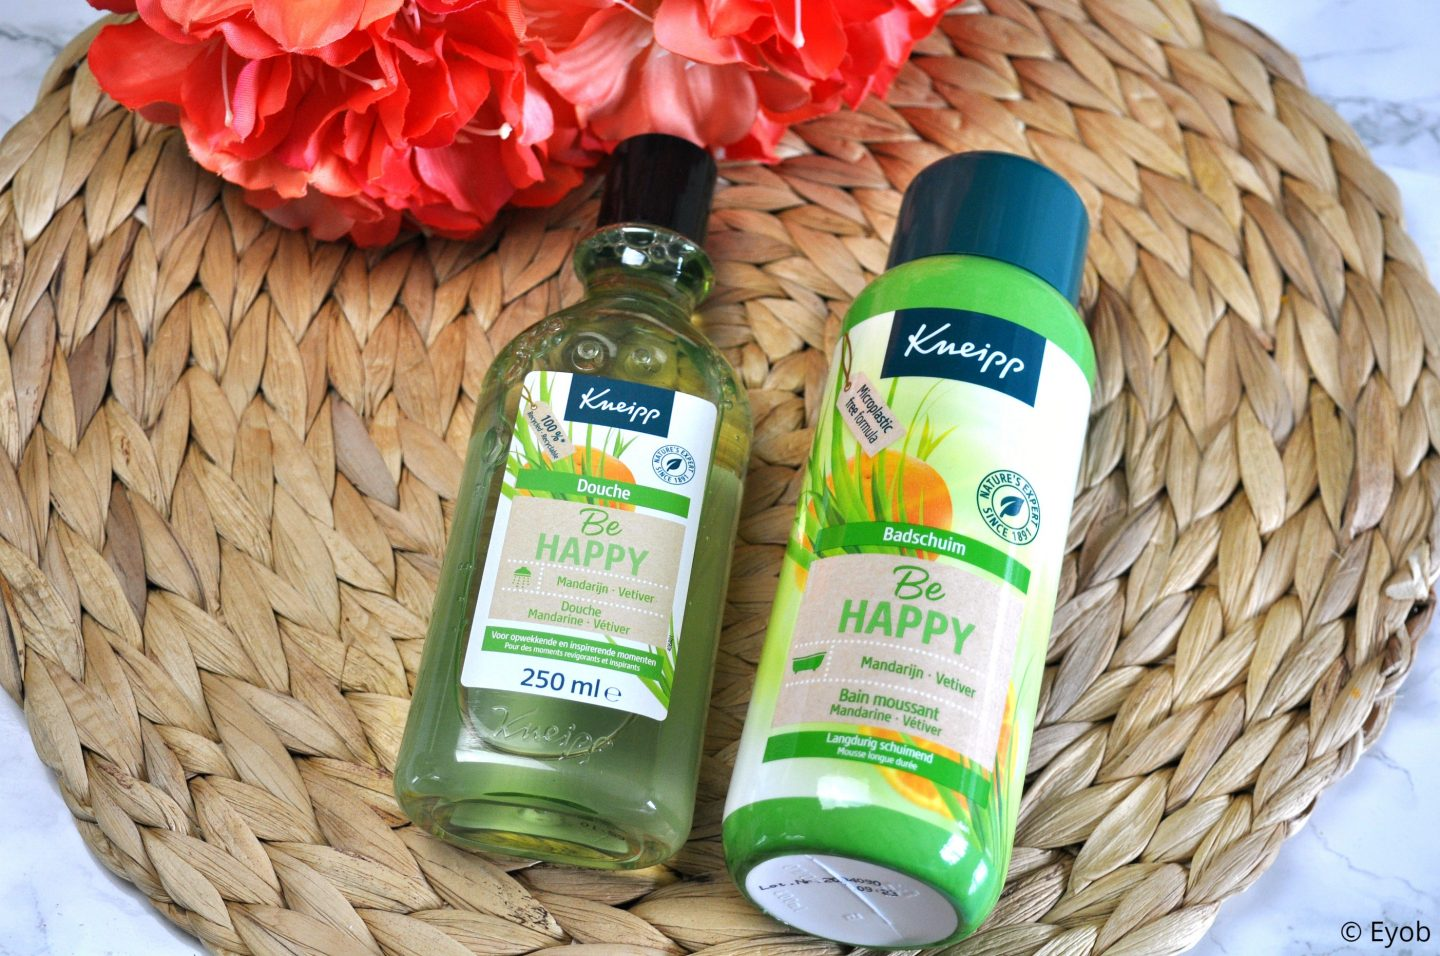 Kneipp: Be Happy – review